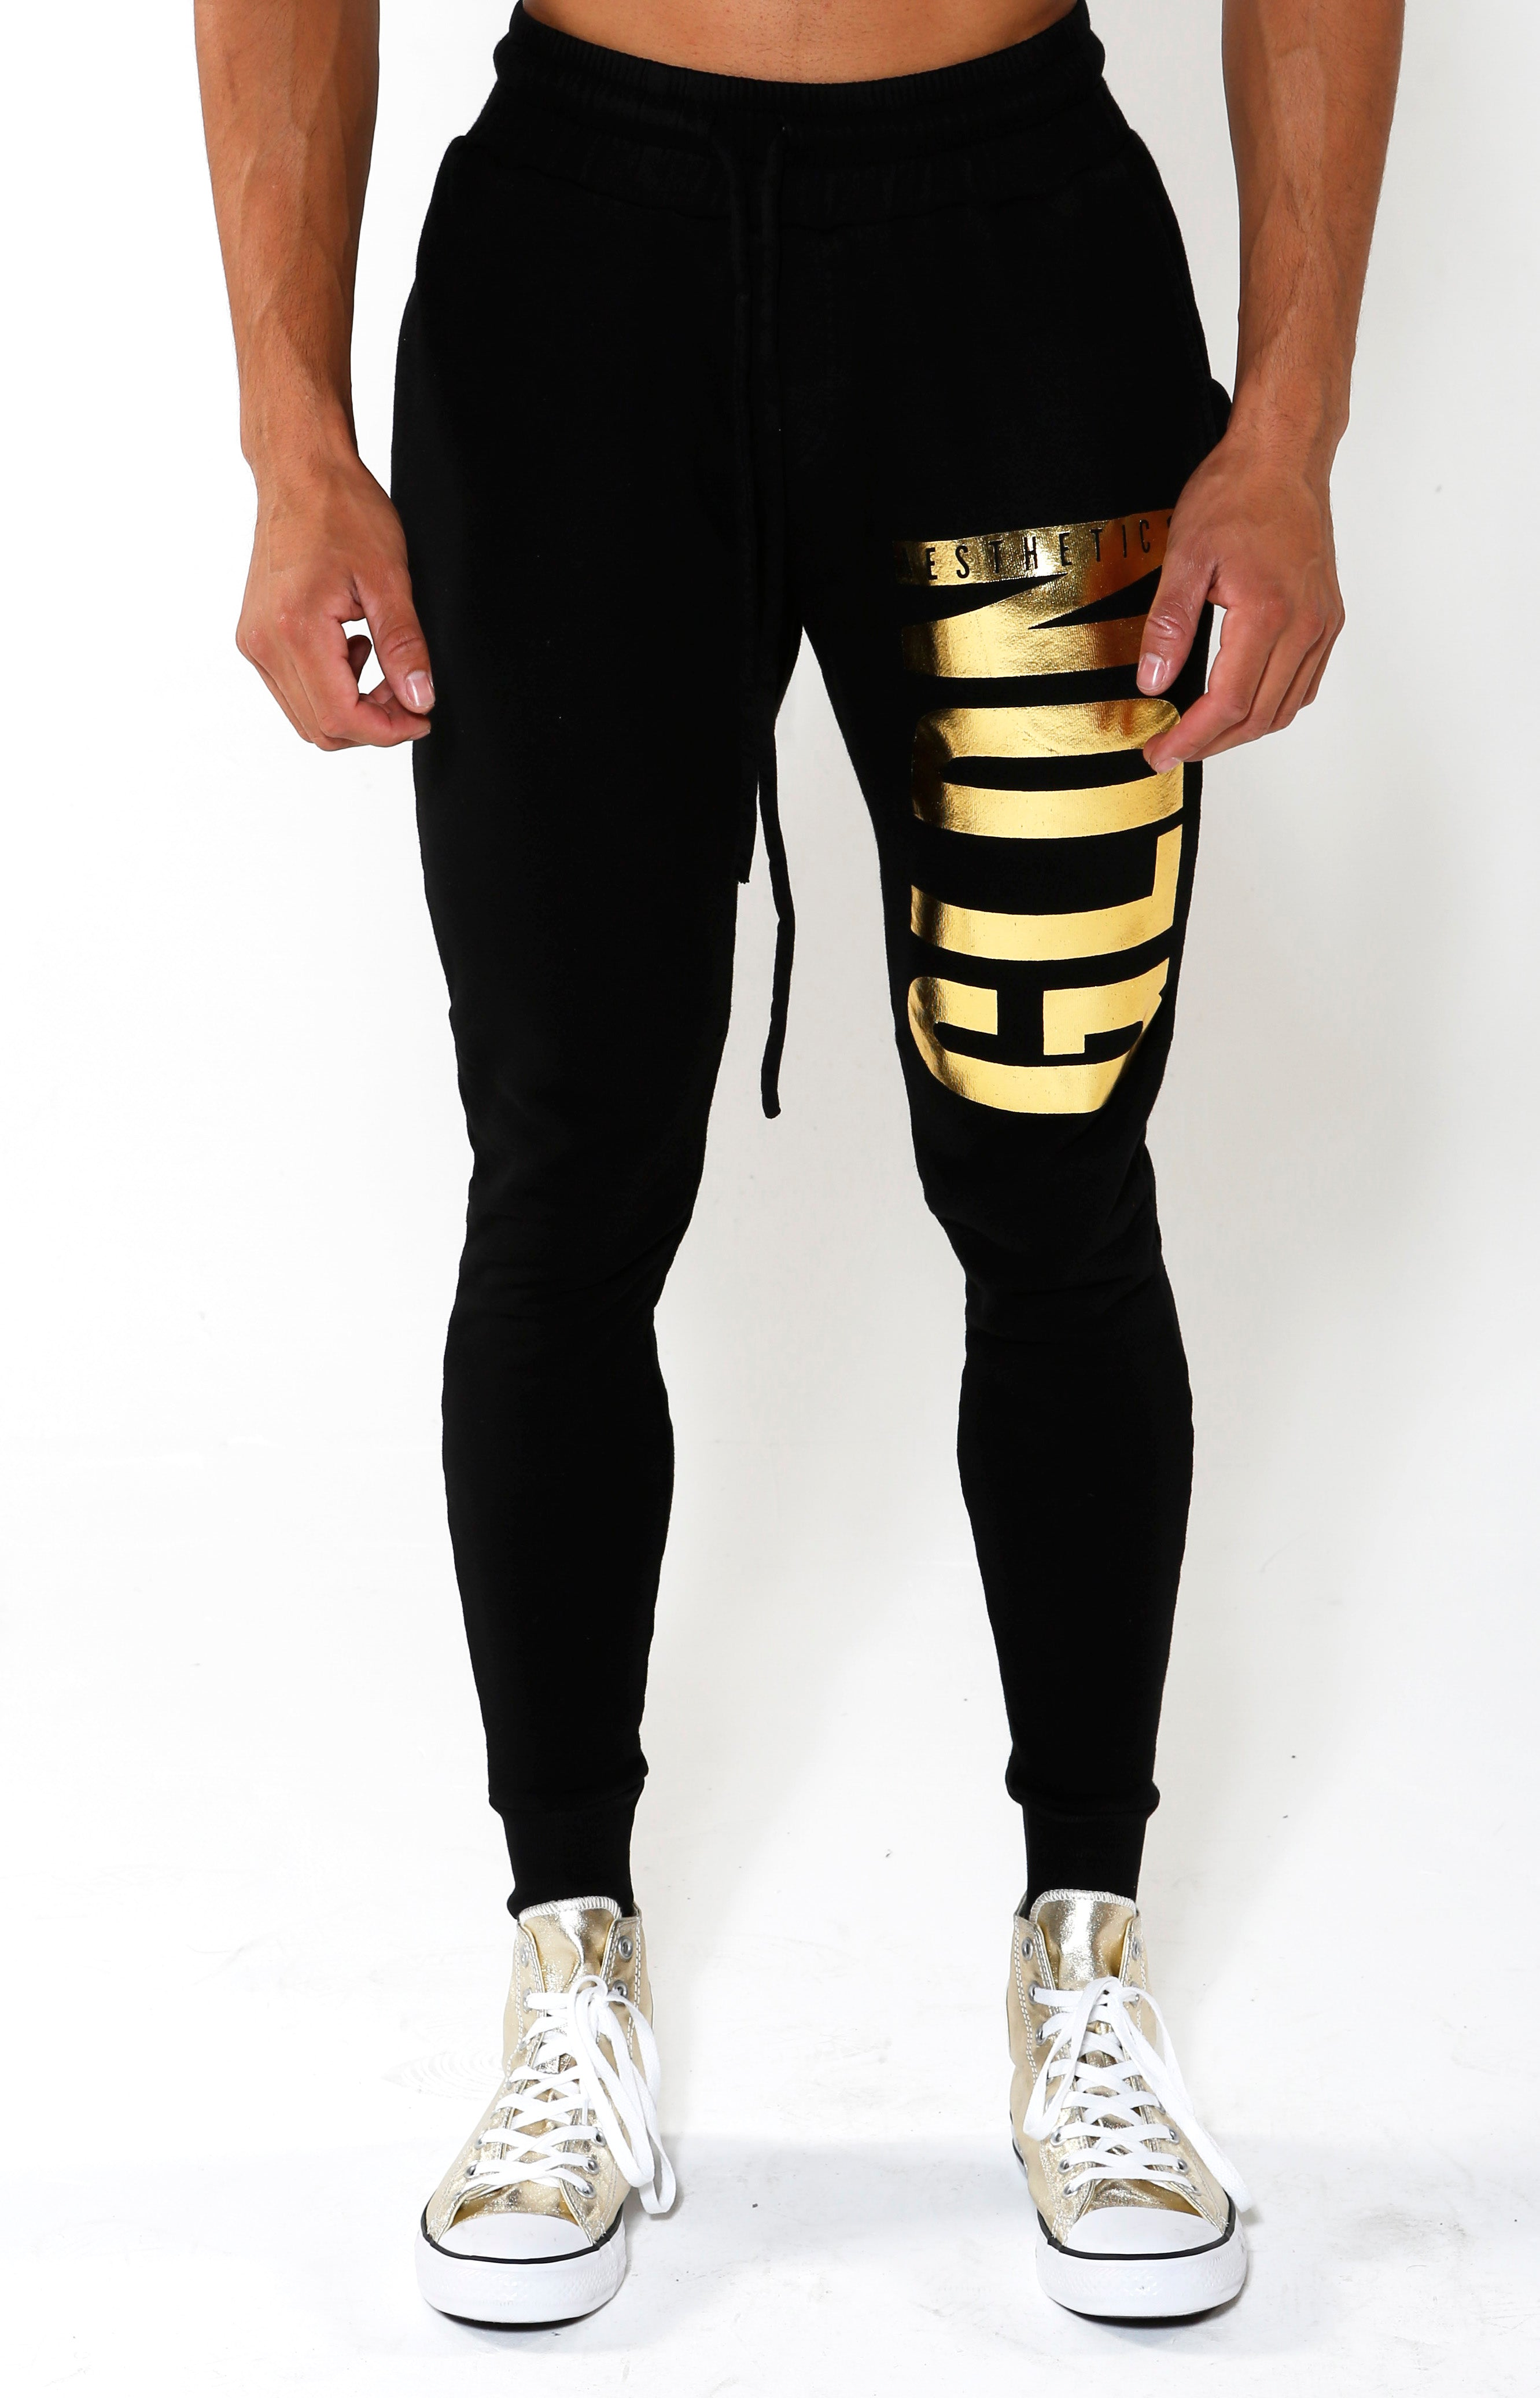 Limited Edition Tapered GA Joggers - Black/Gold - Golden Aesthetics